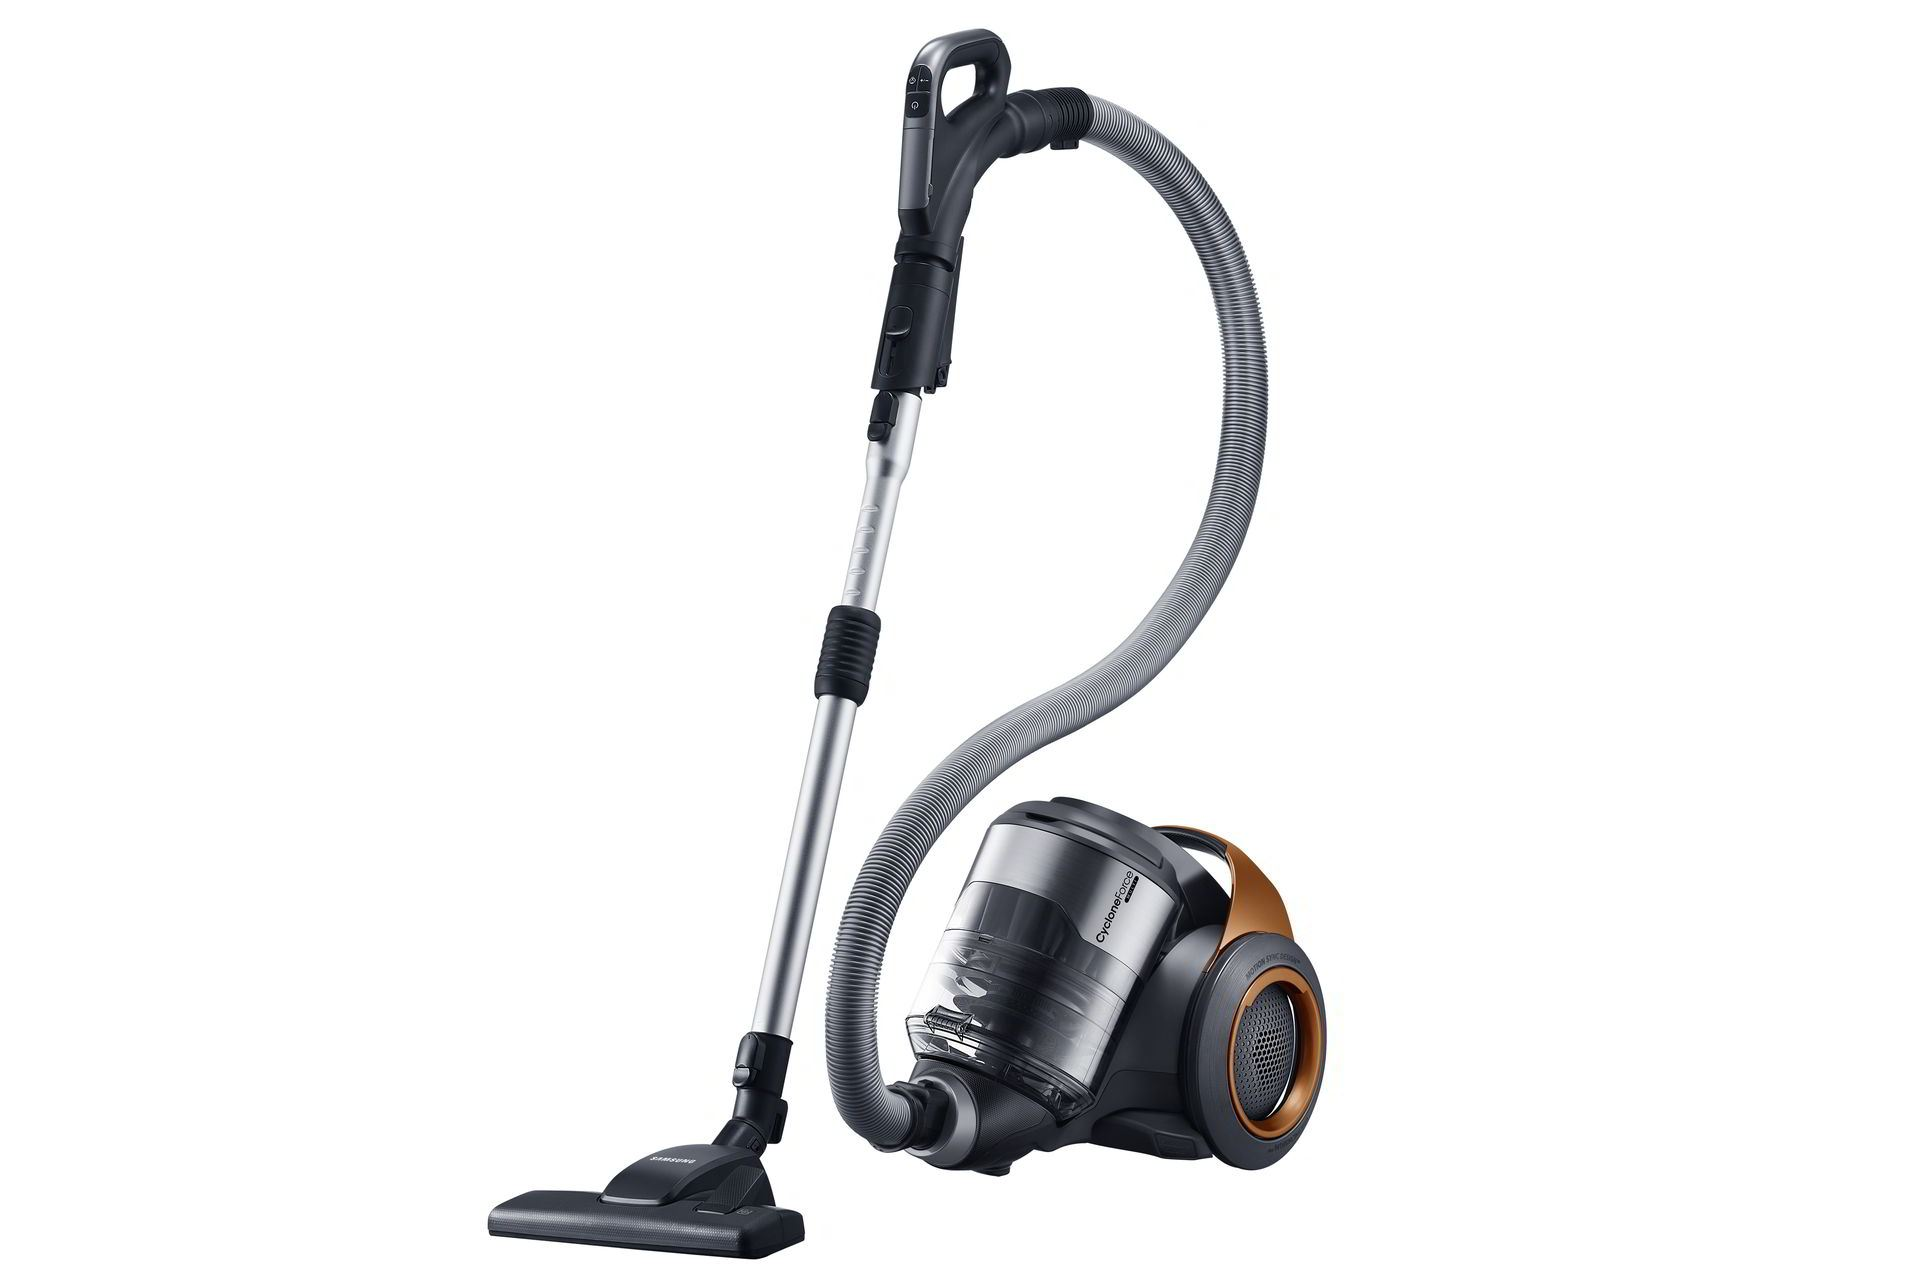 First the iPhone, now vacuum cleaners: Samsung sued by